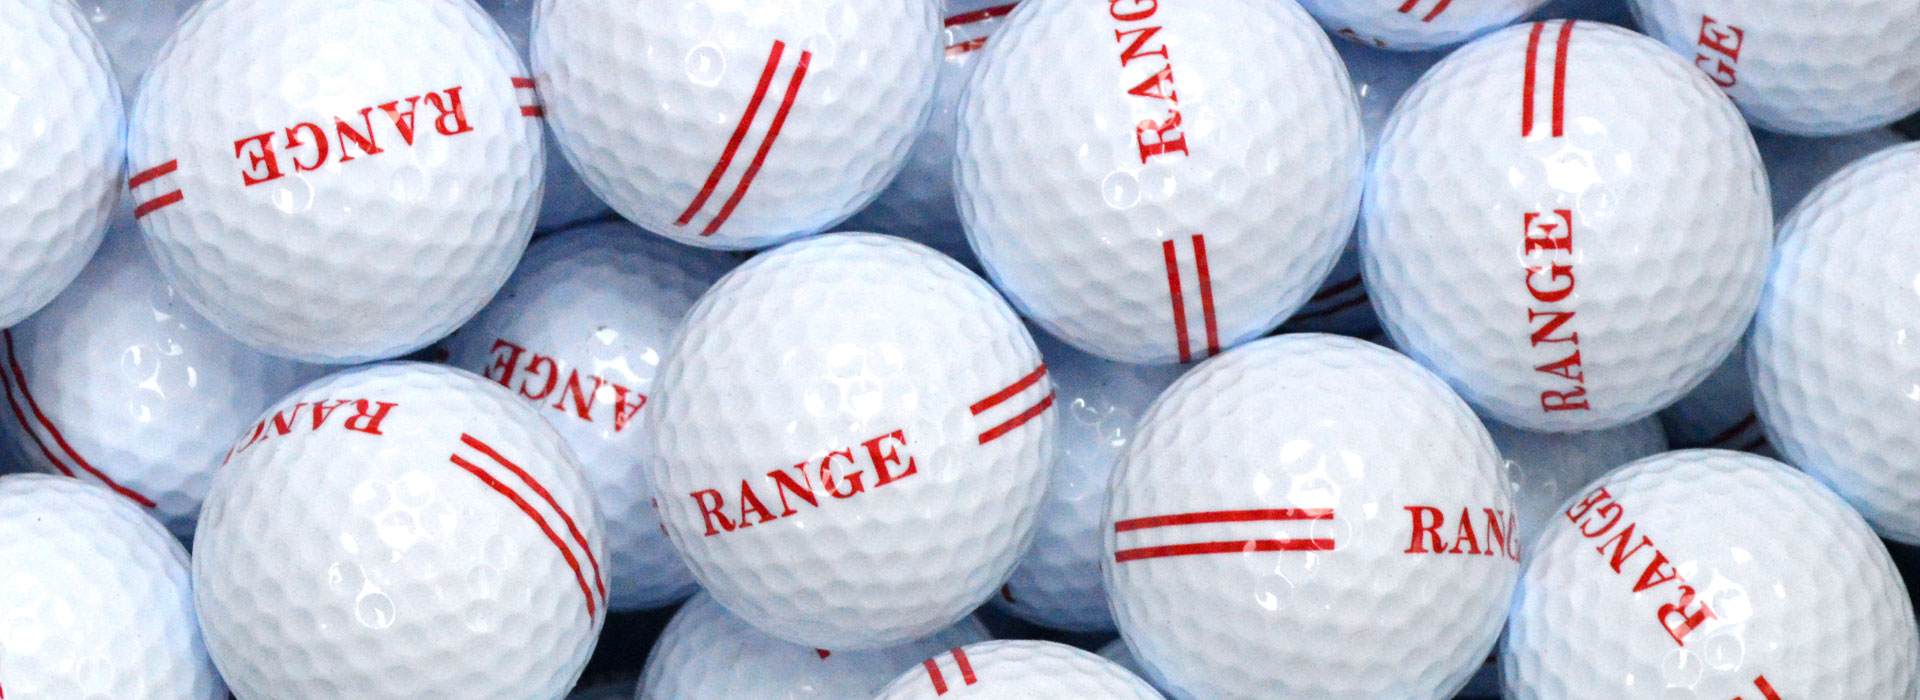 2 Piece White Golf Balls